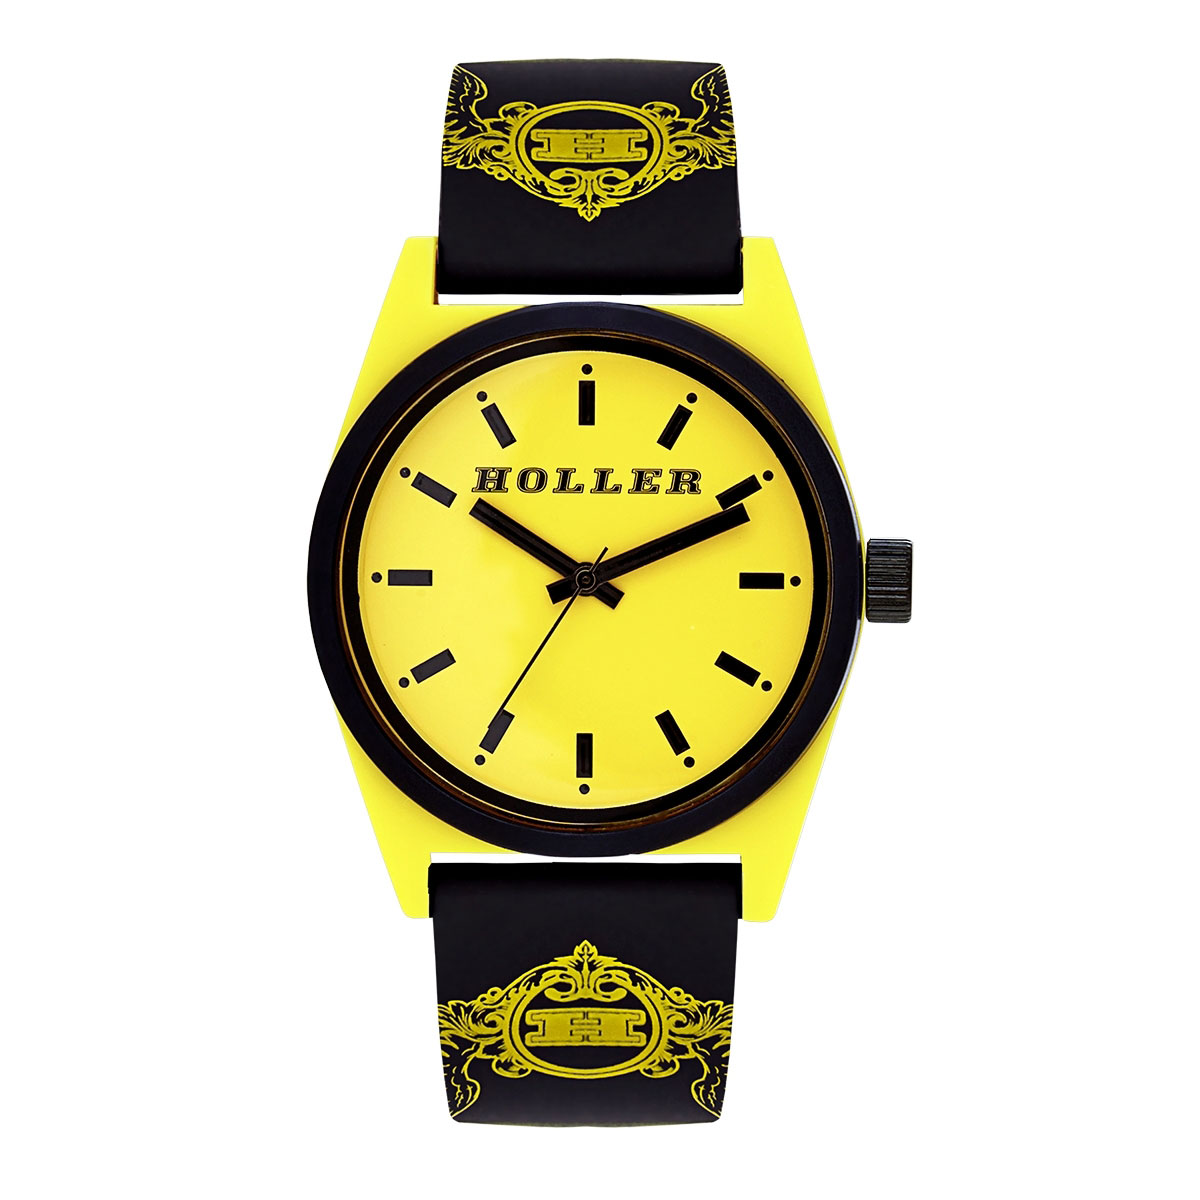 Backbeat Yellow & Black Watch